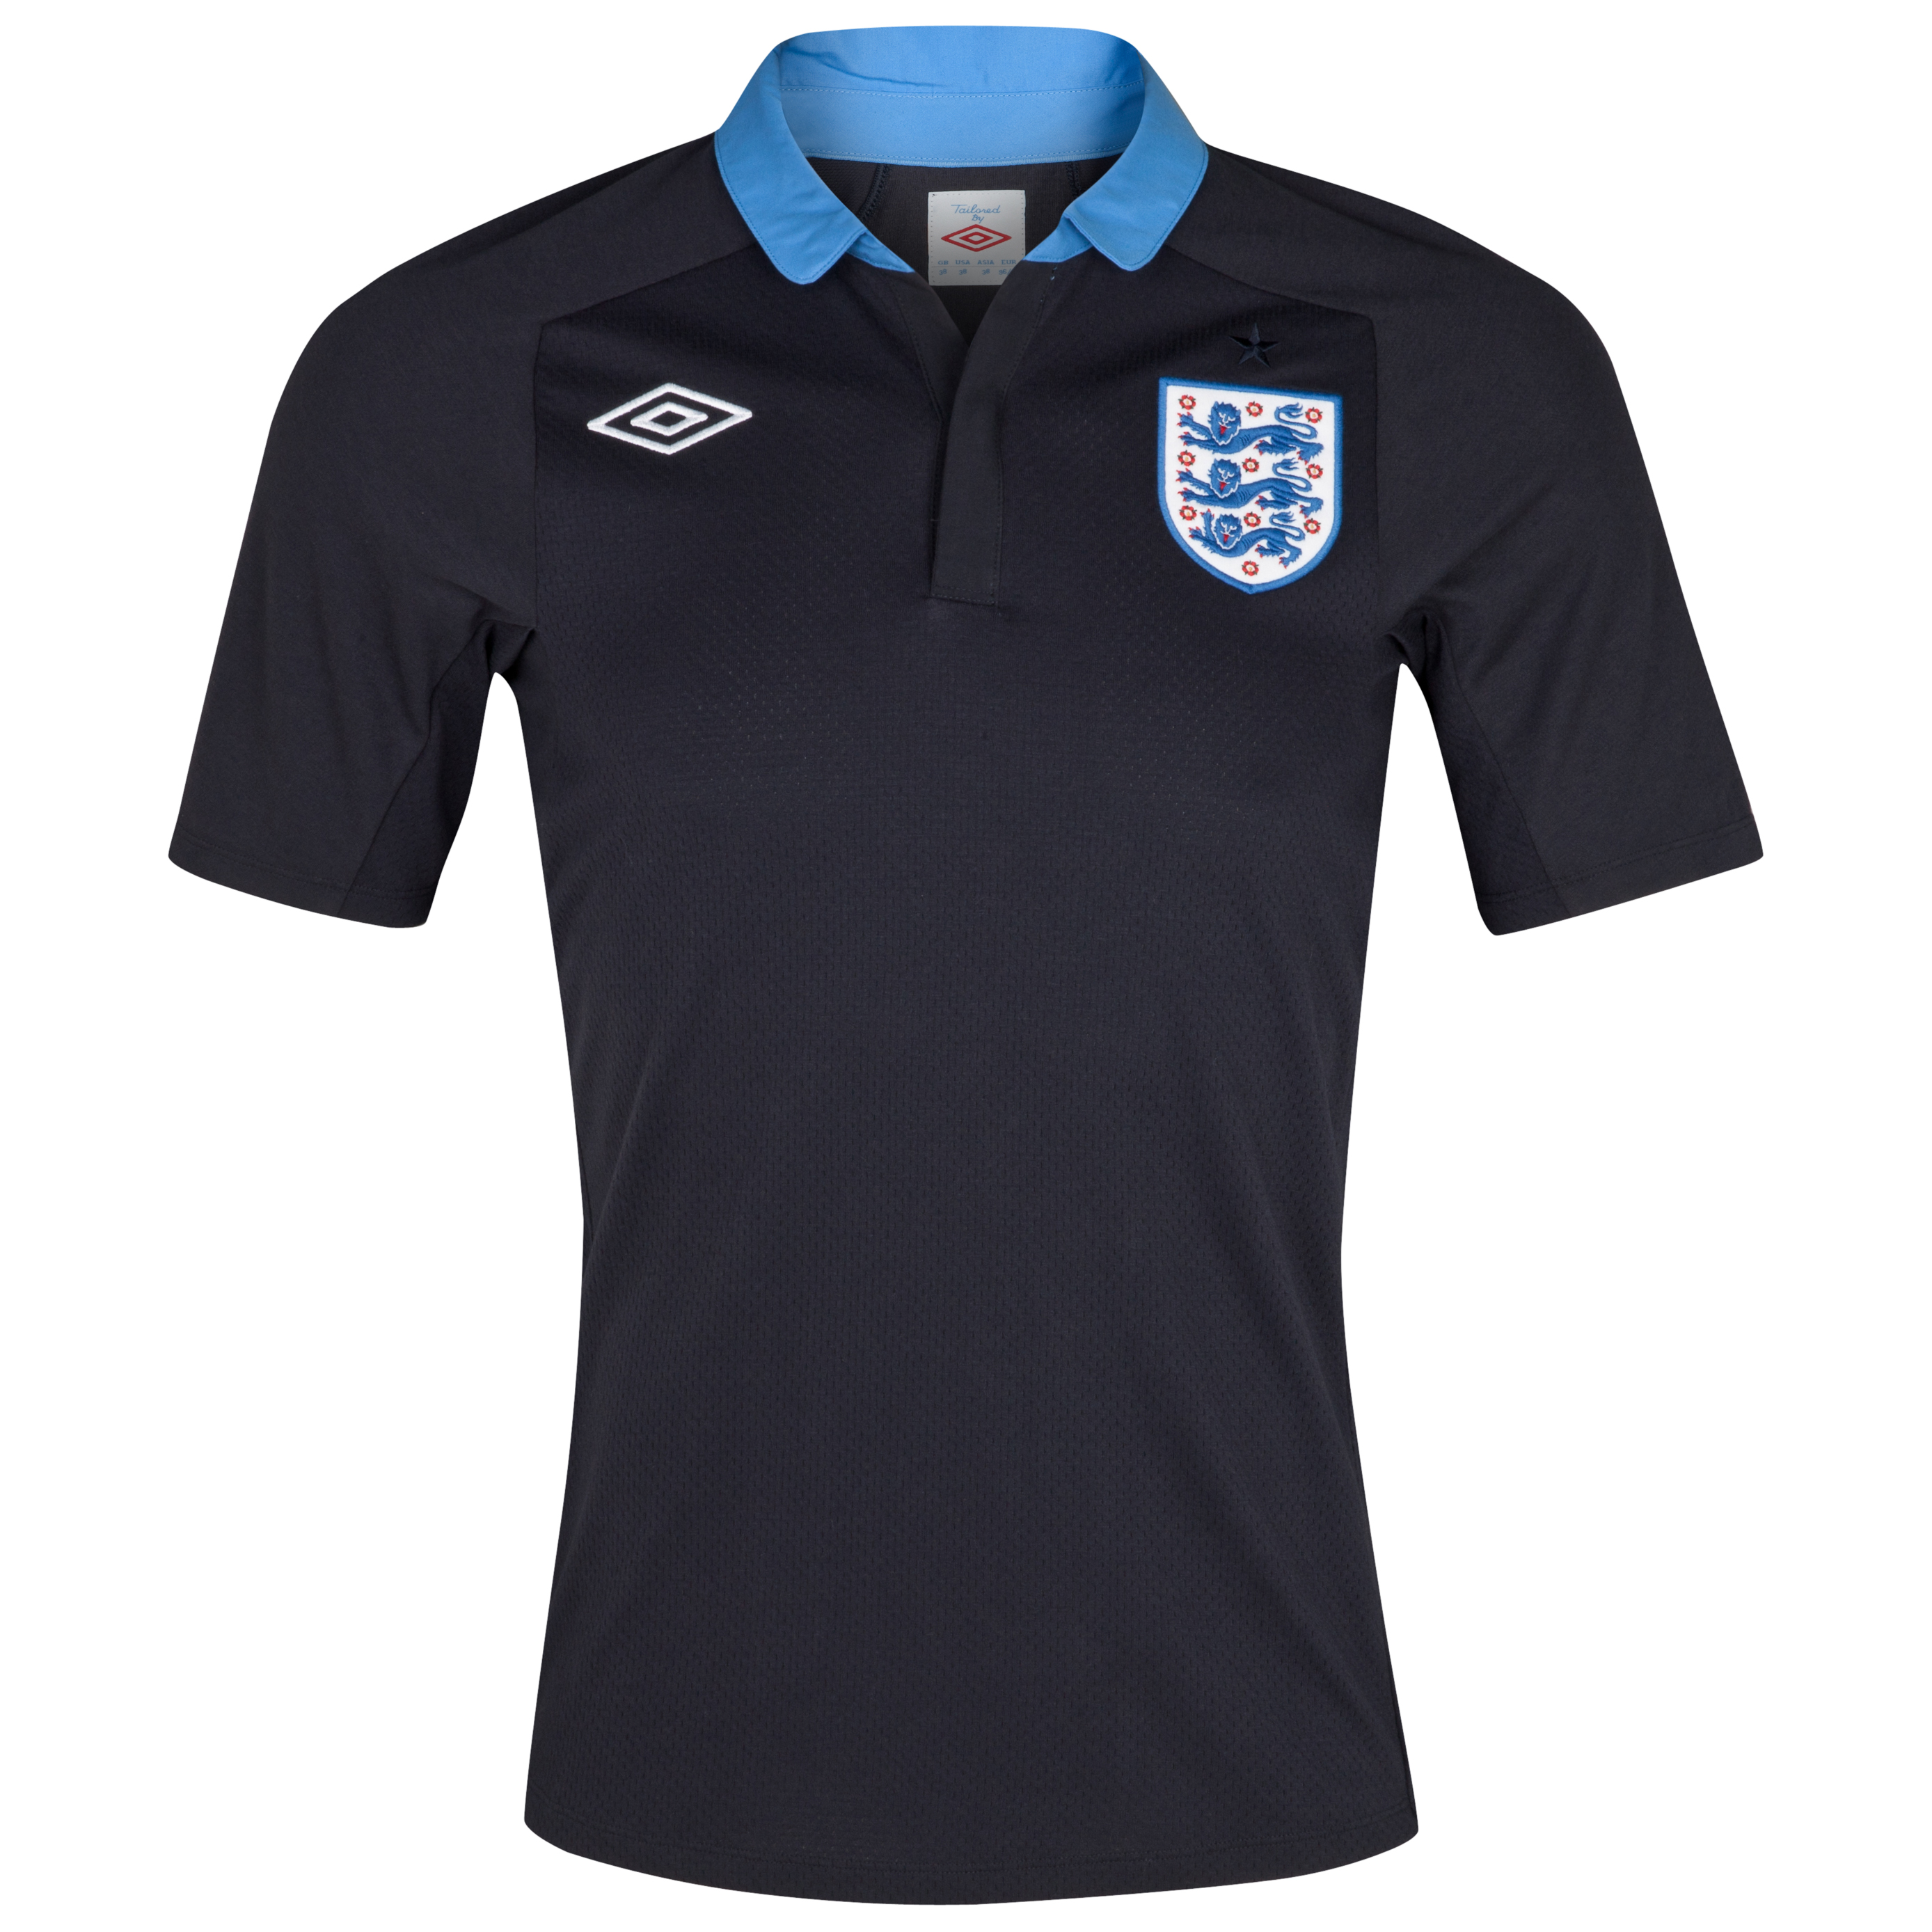 England Away Shirt 2011/12 Including England v Sweden Insignia